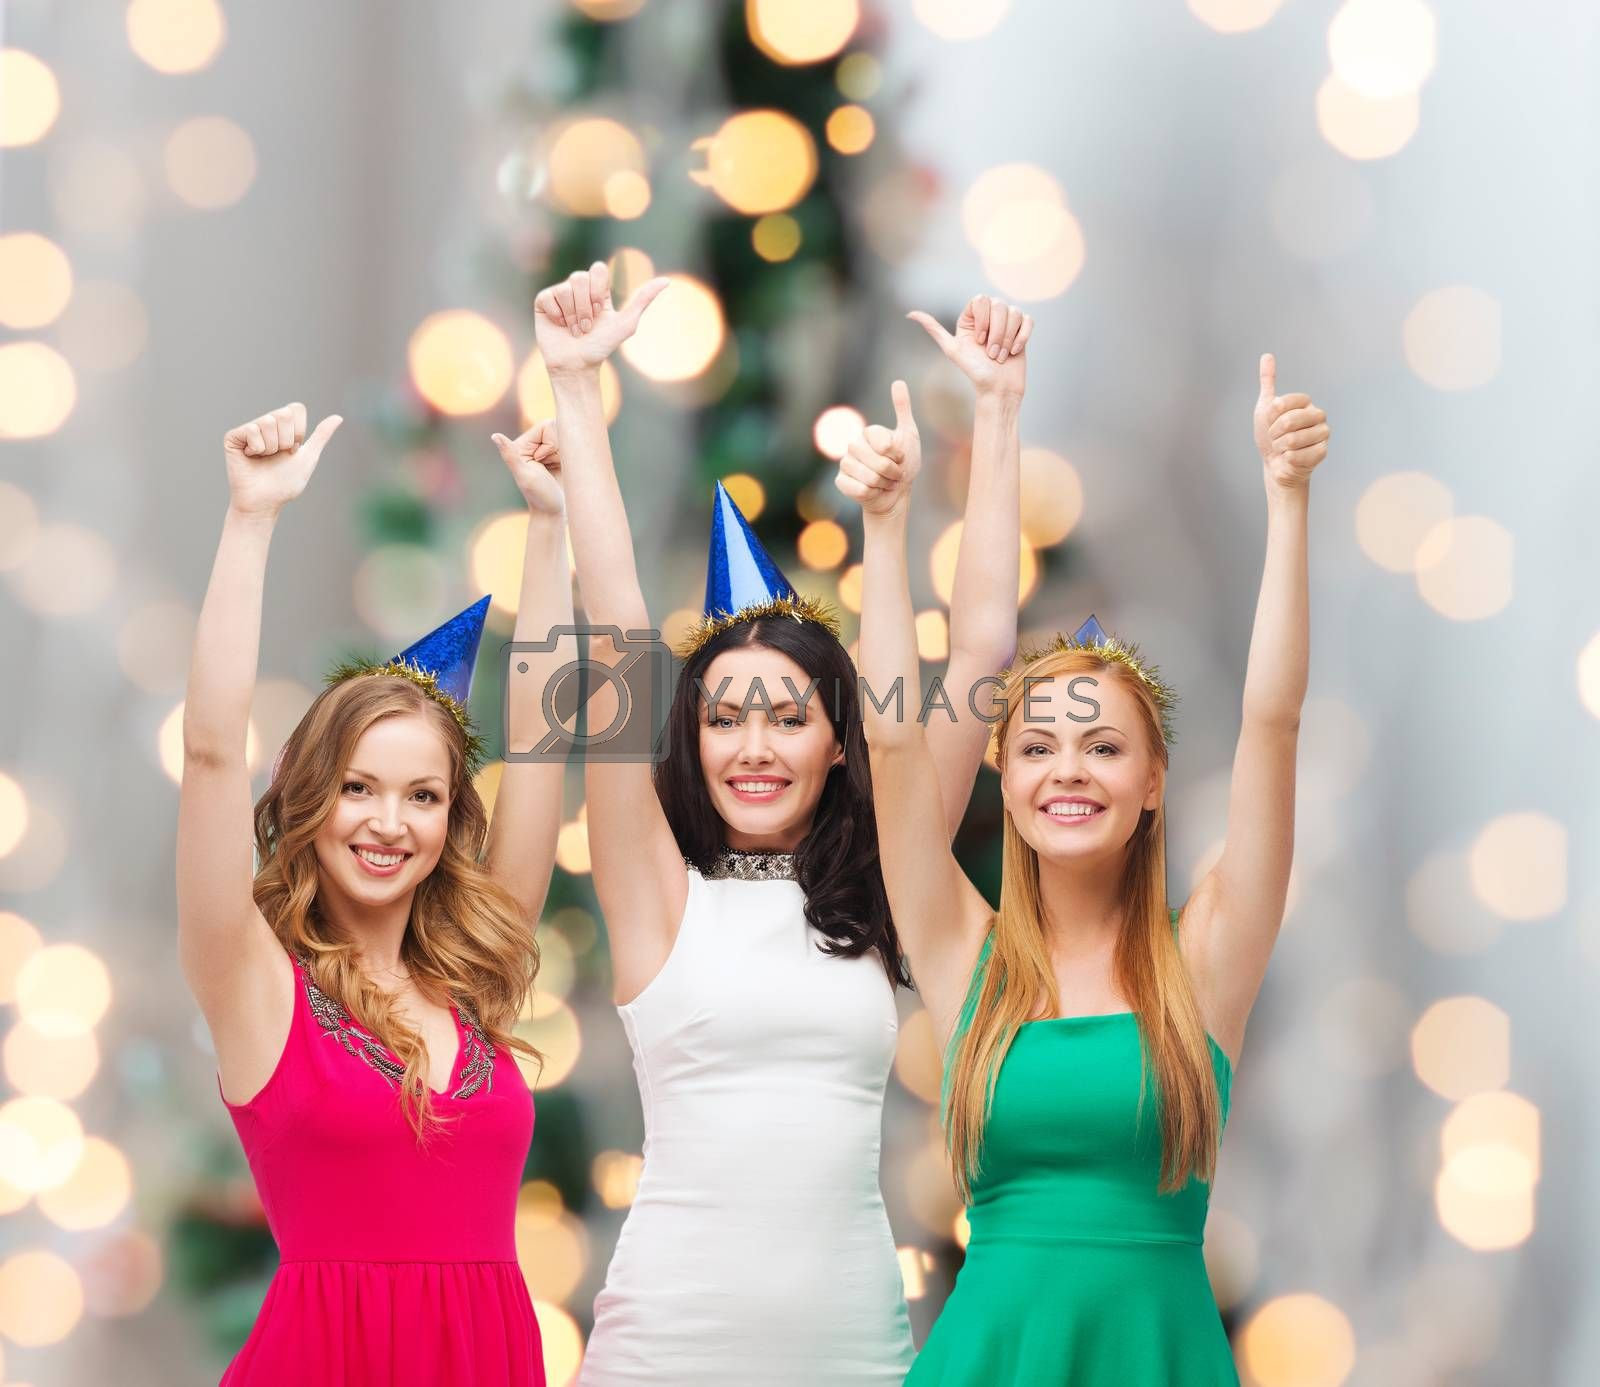 holidays, people, gesture and celebration concept - smiling women in party caps showing thumbs up over christmas tree lights background